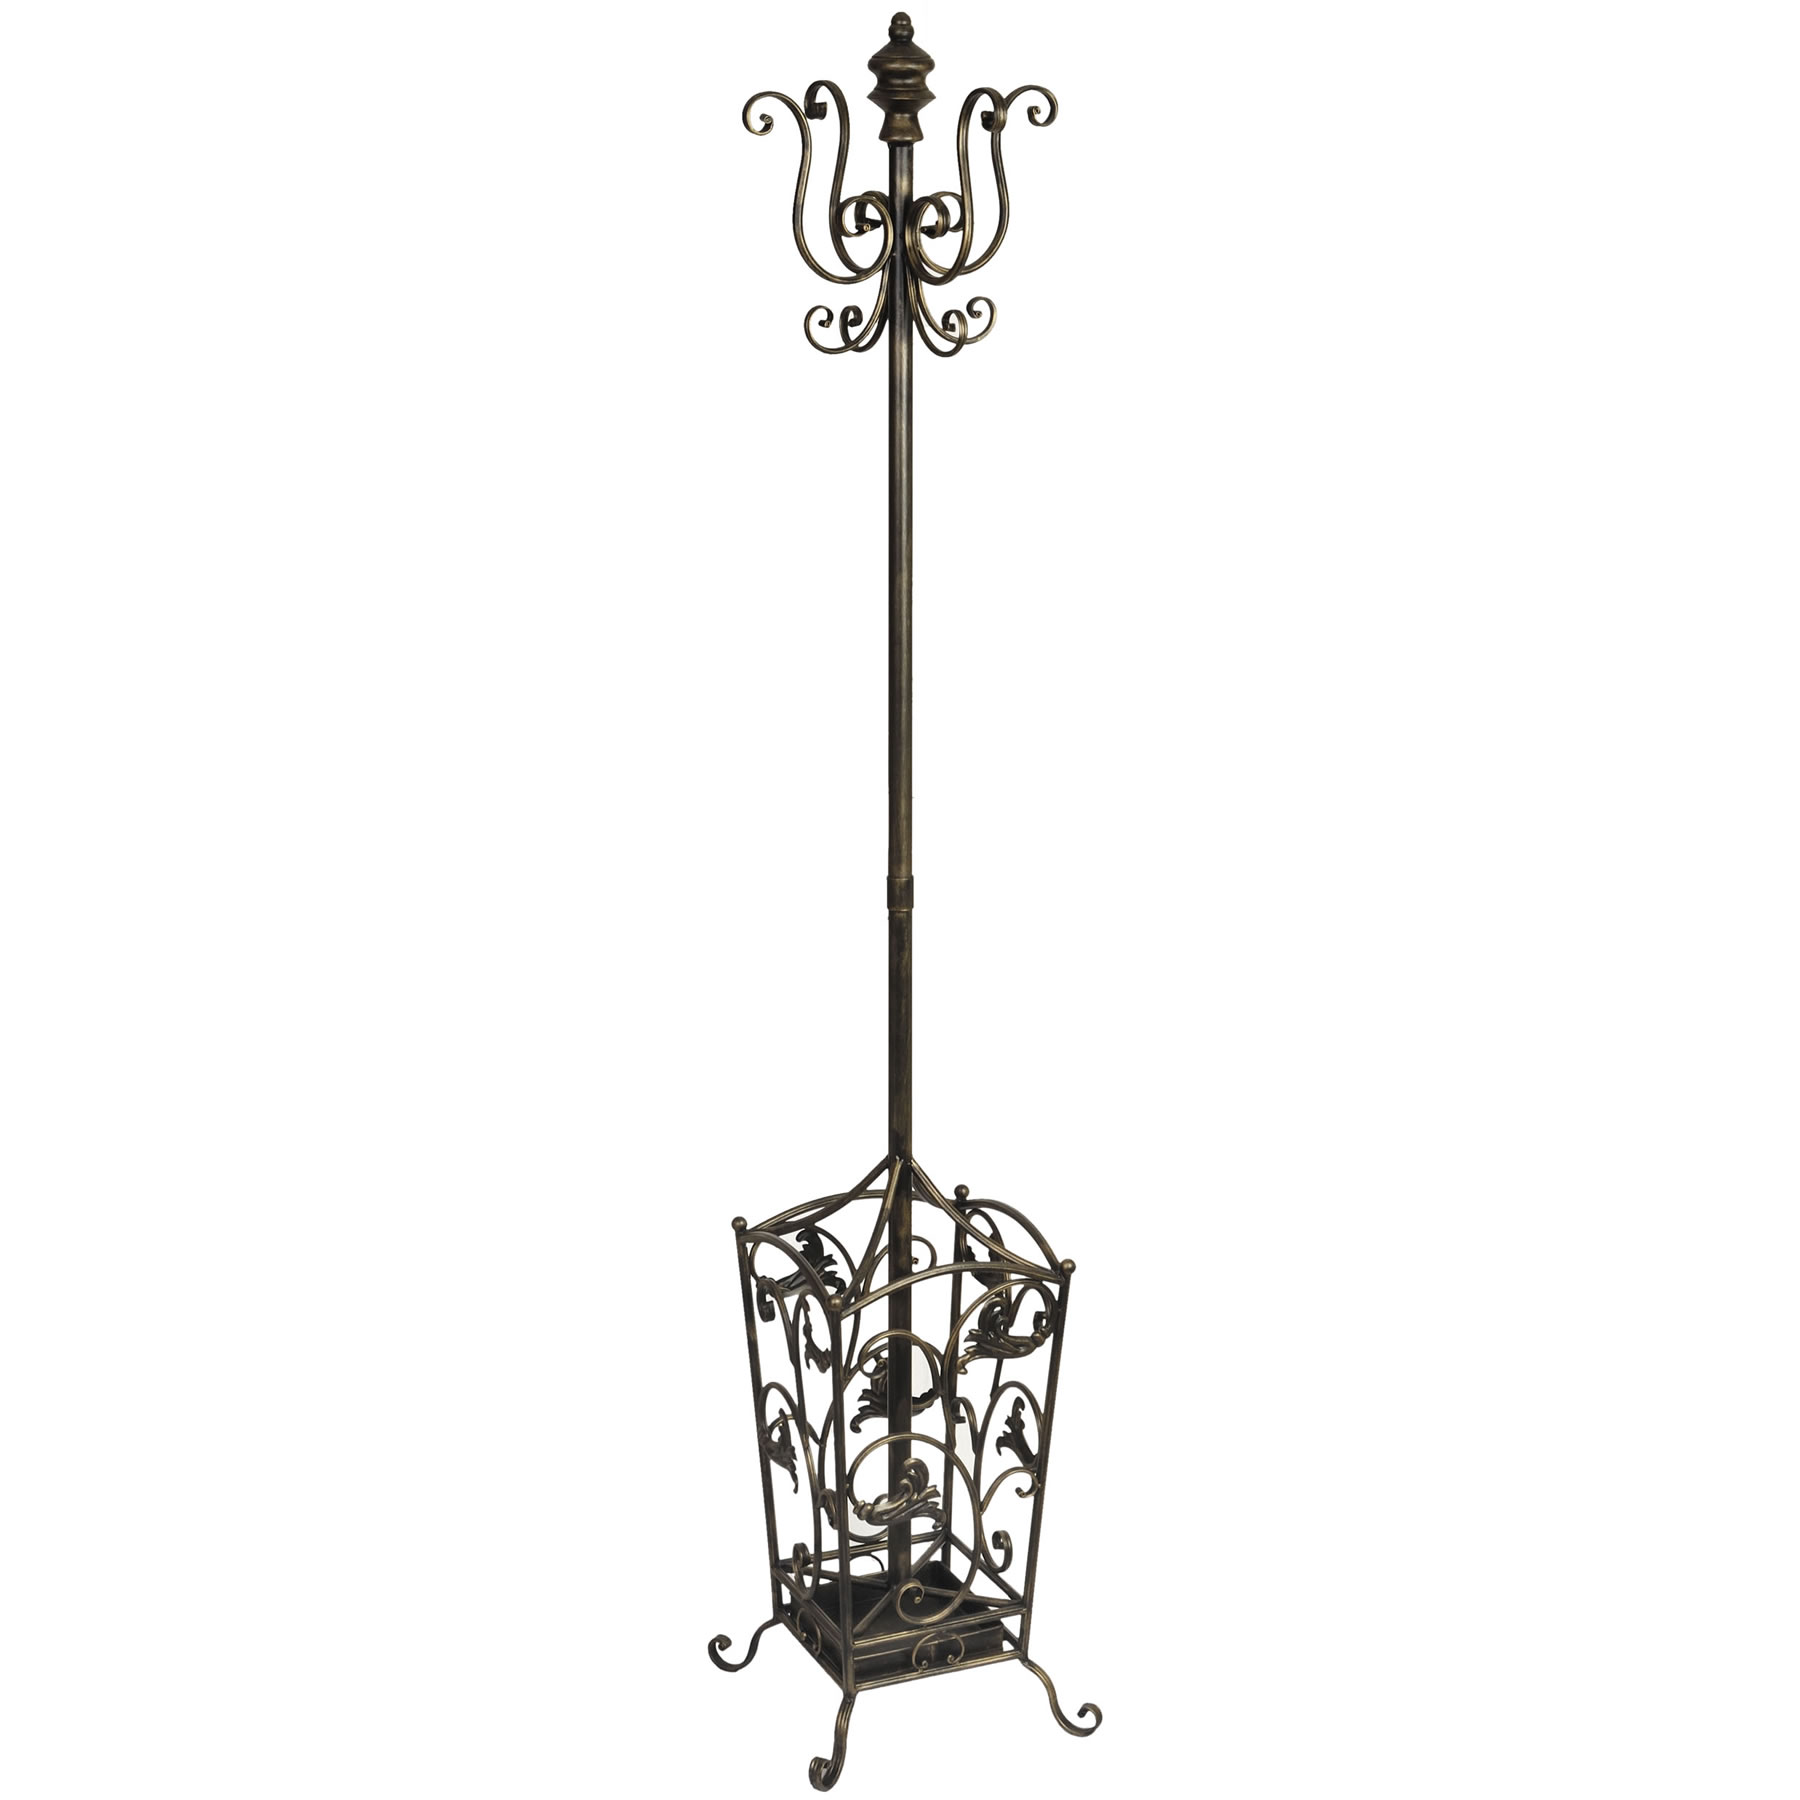 Antique Standing Coat Rack with umberella stand and floral ornament